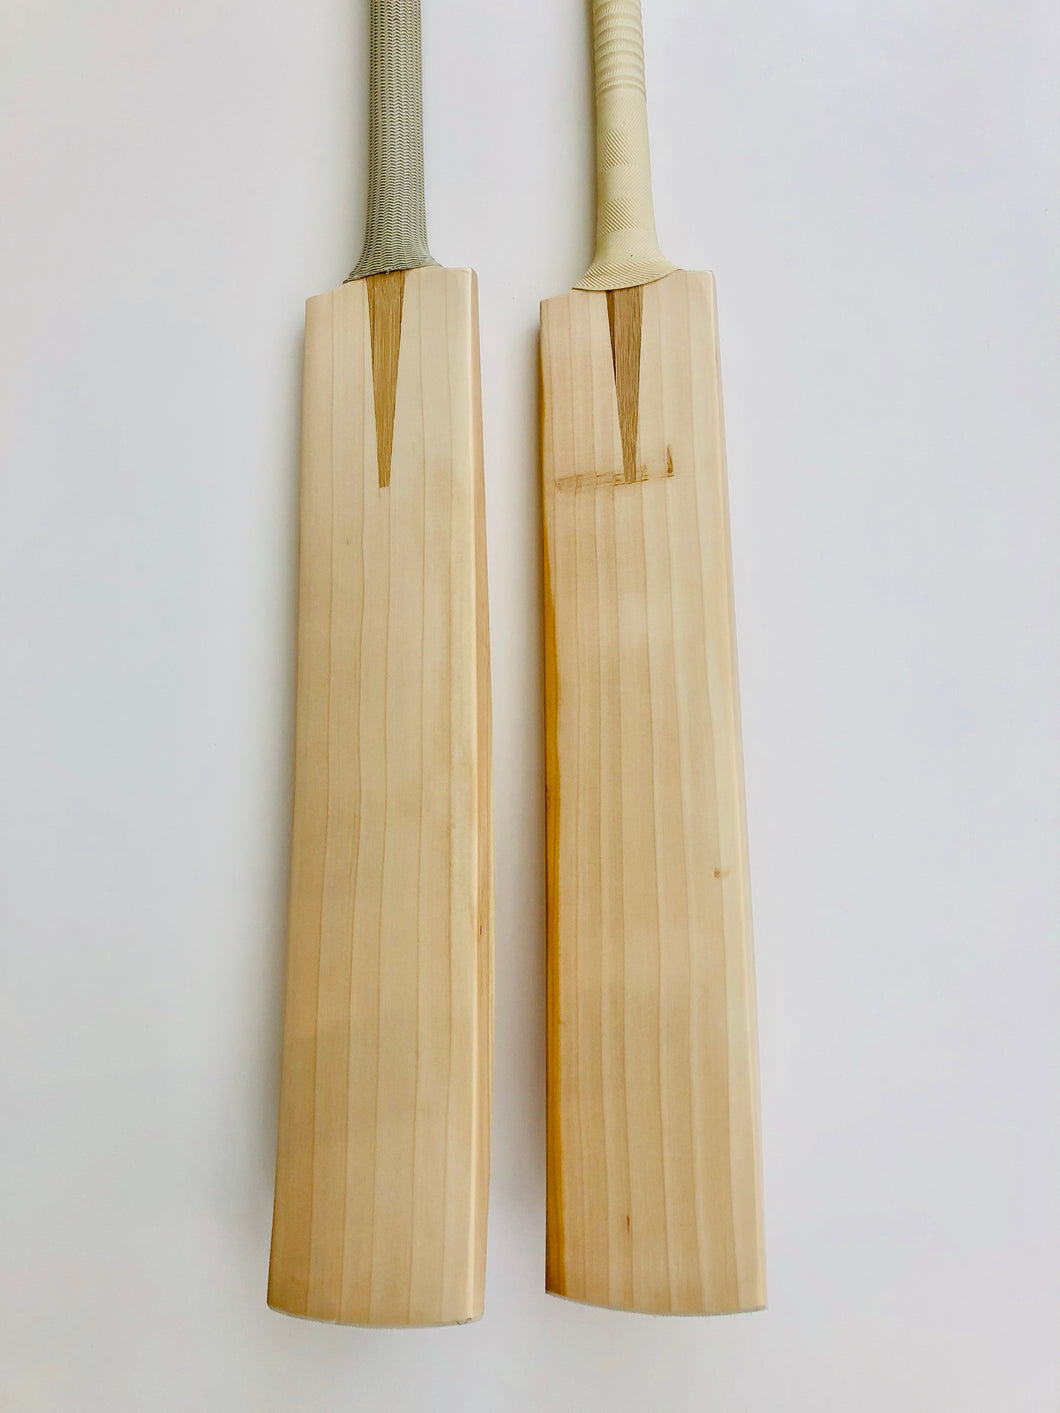 Custom Made Grade 2 Cricket Bat | Design your own Bat - DKP Cricket Online